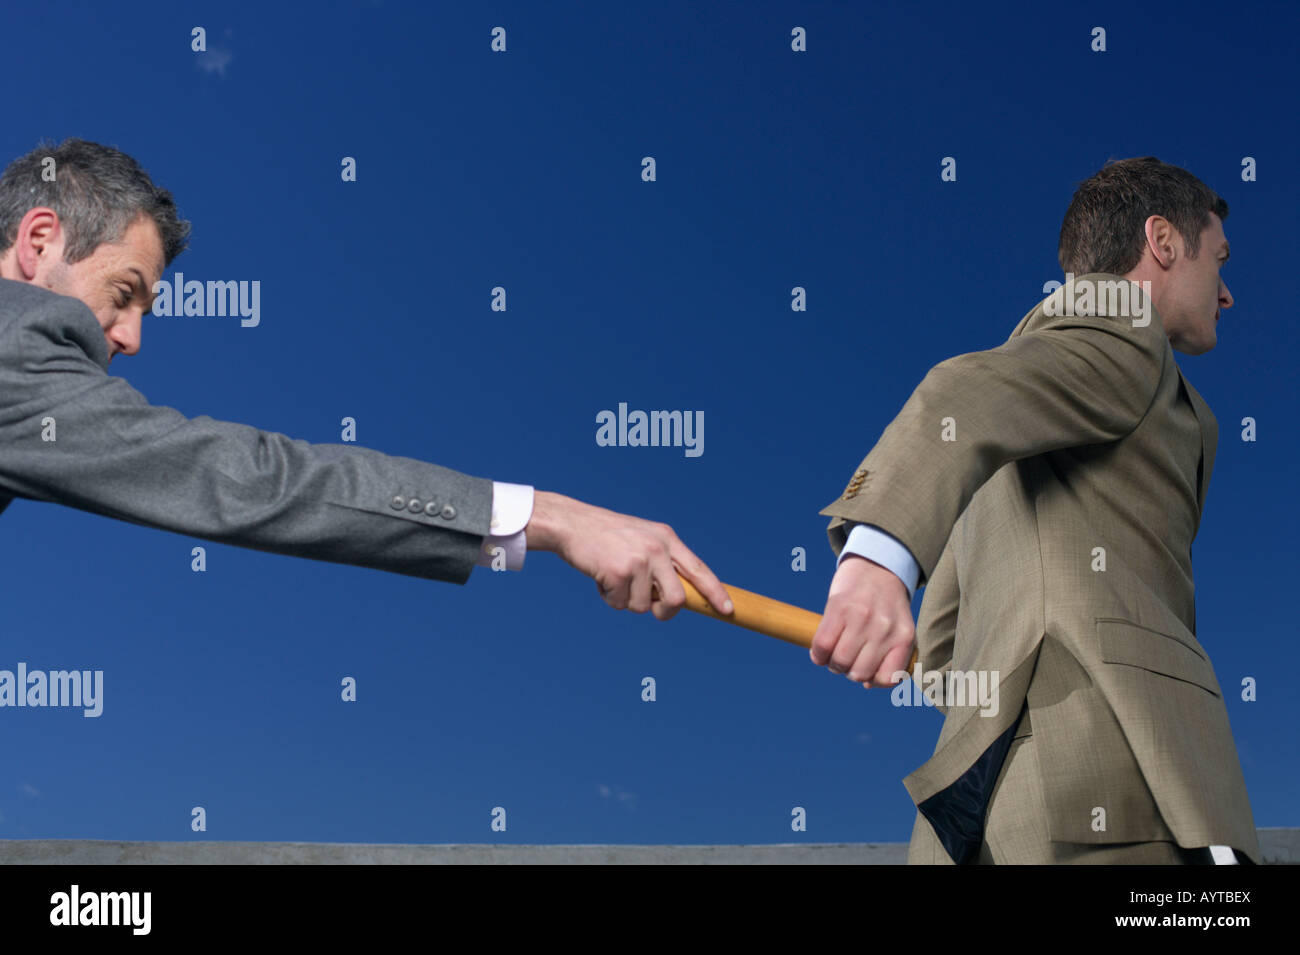 Businessman passing baton to colleague - Stock Image